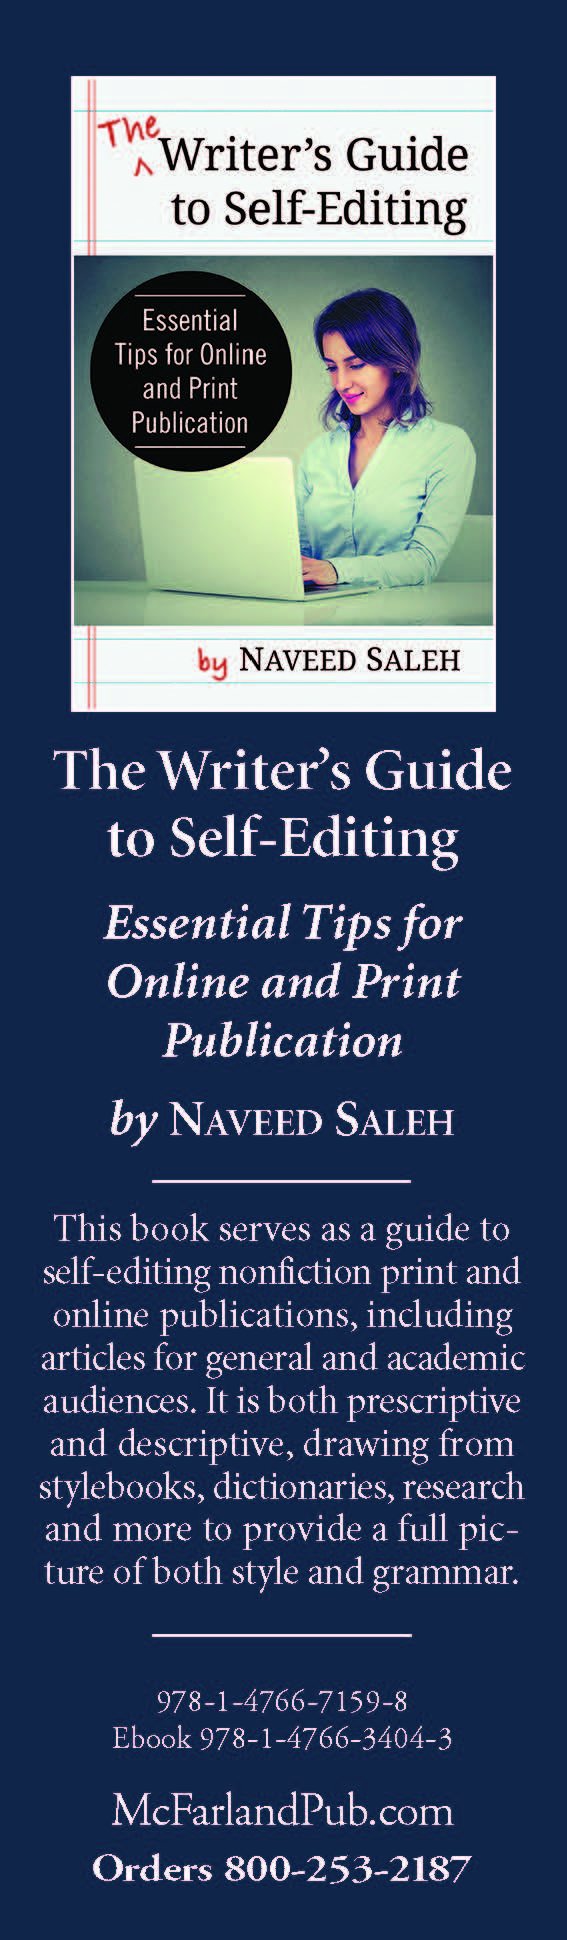 Saleh The Writer's Guide to Self-Editing BOOKMARK.jpg